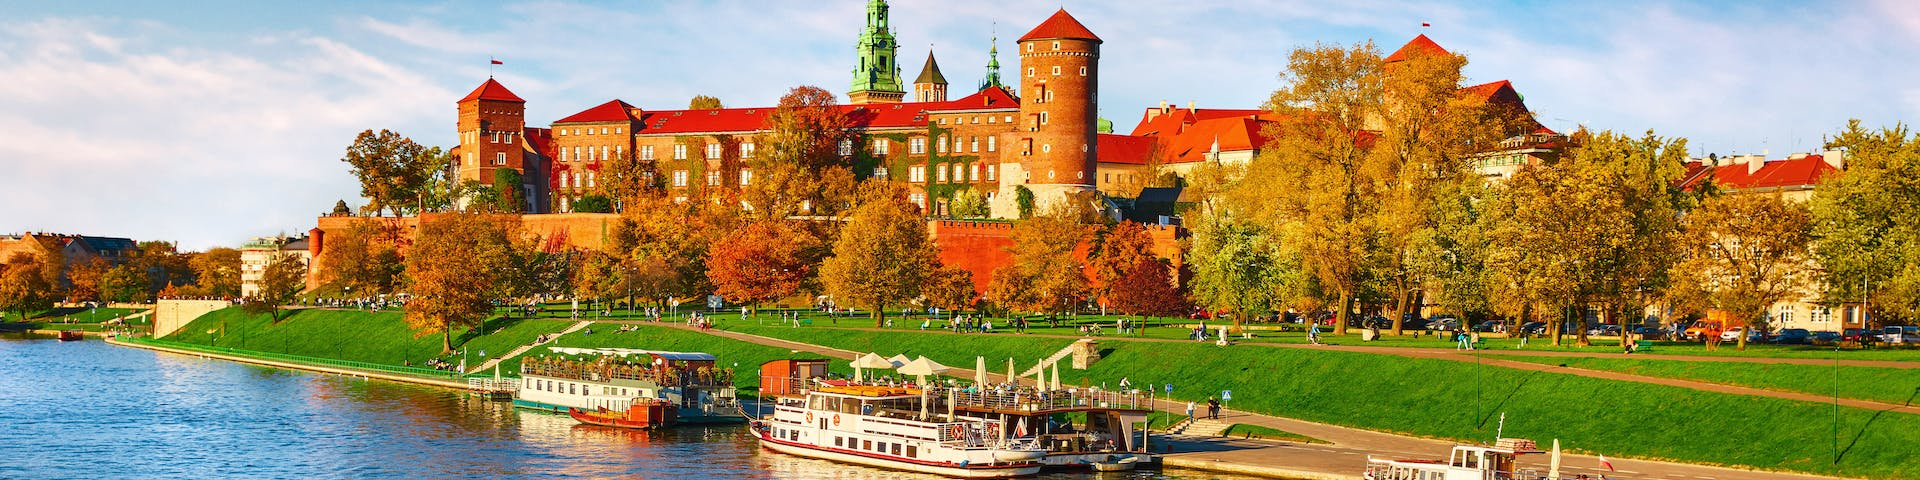 Study in Poland: Fees and Living Costs - MastersPortal com